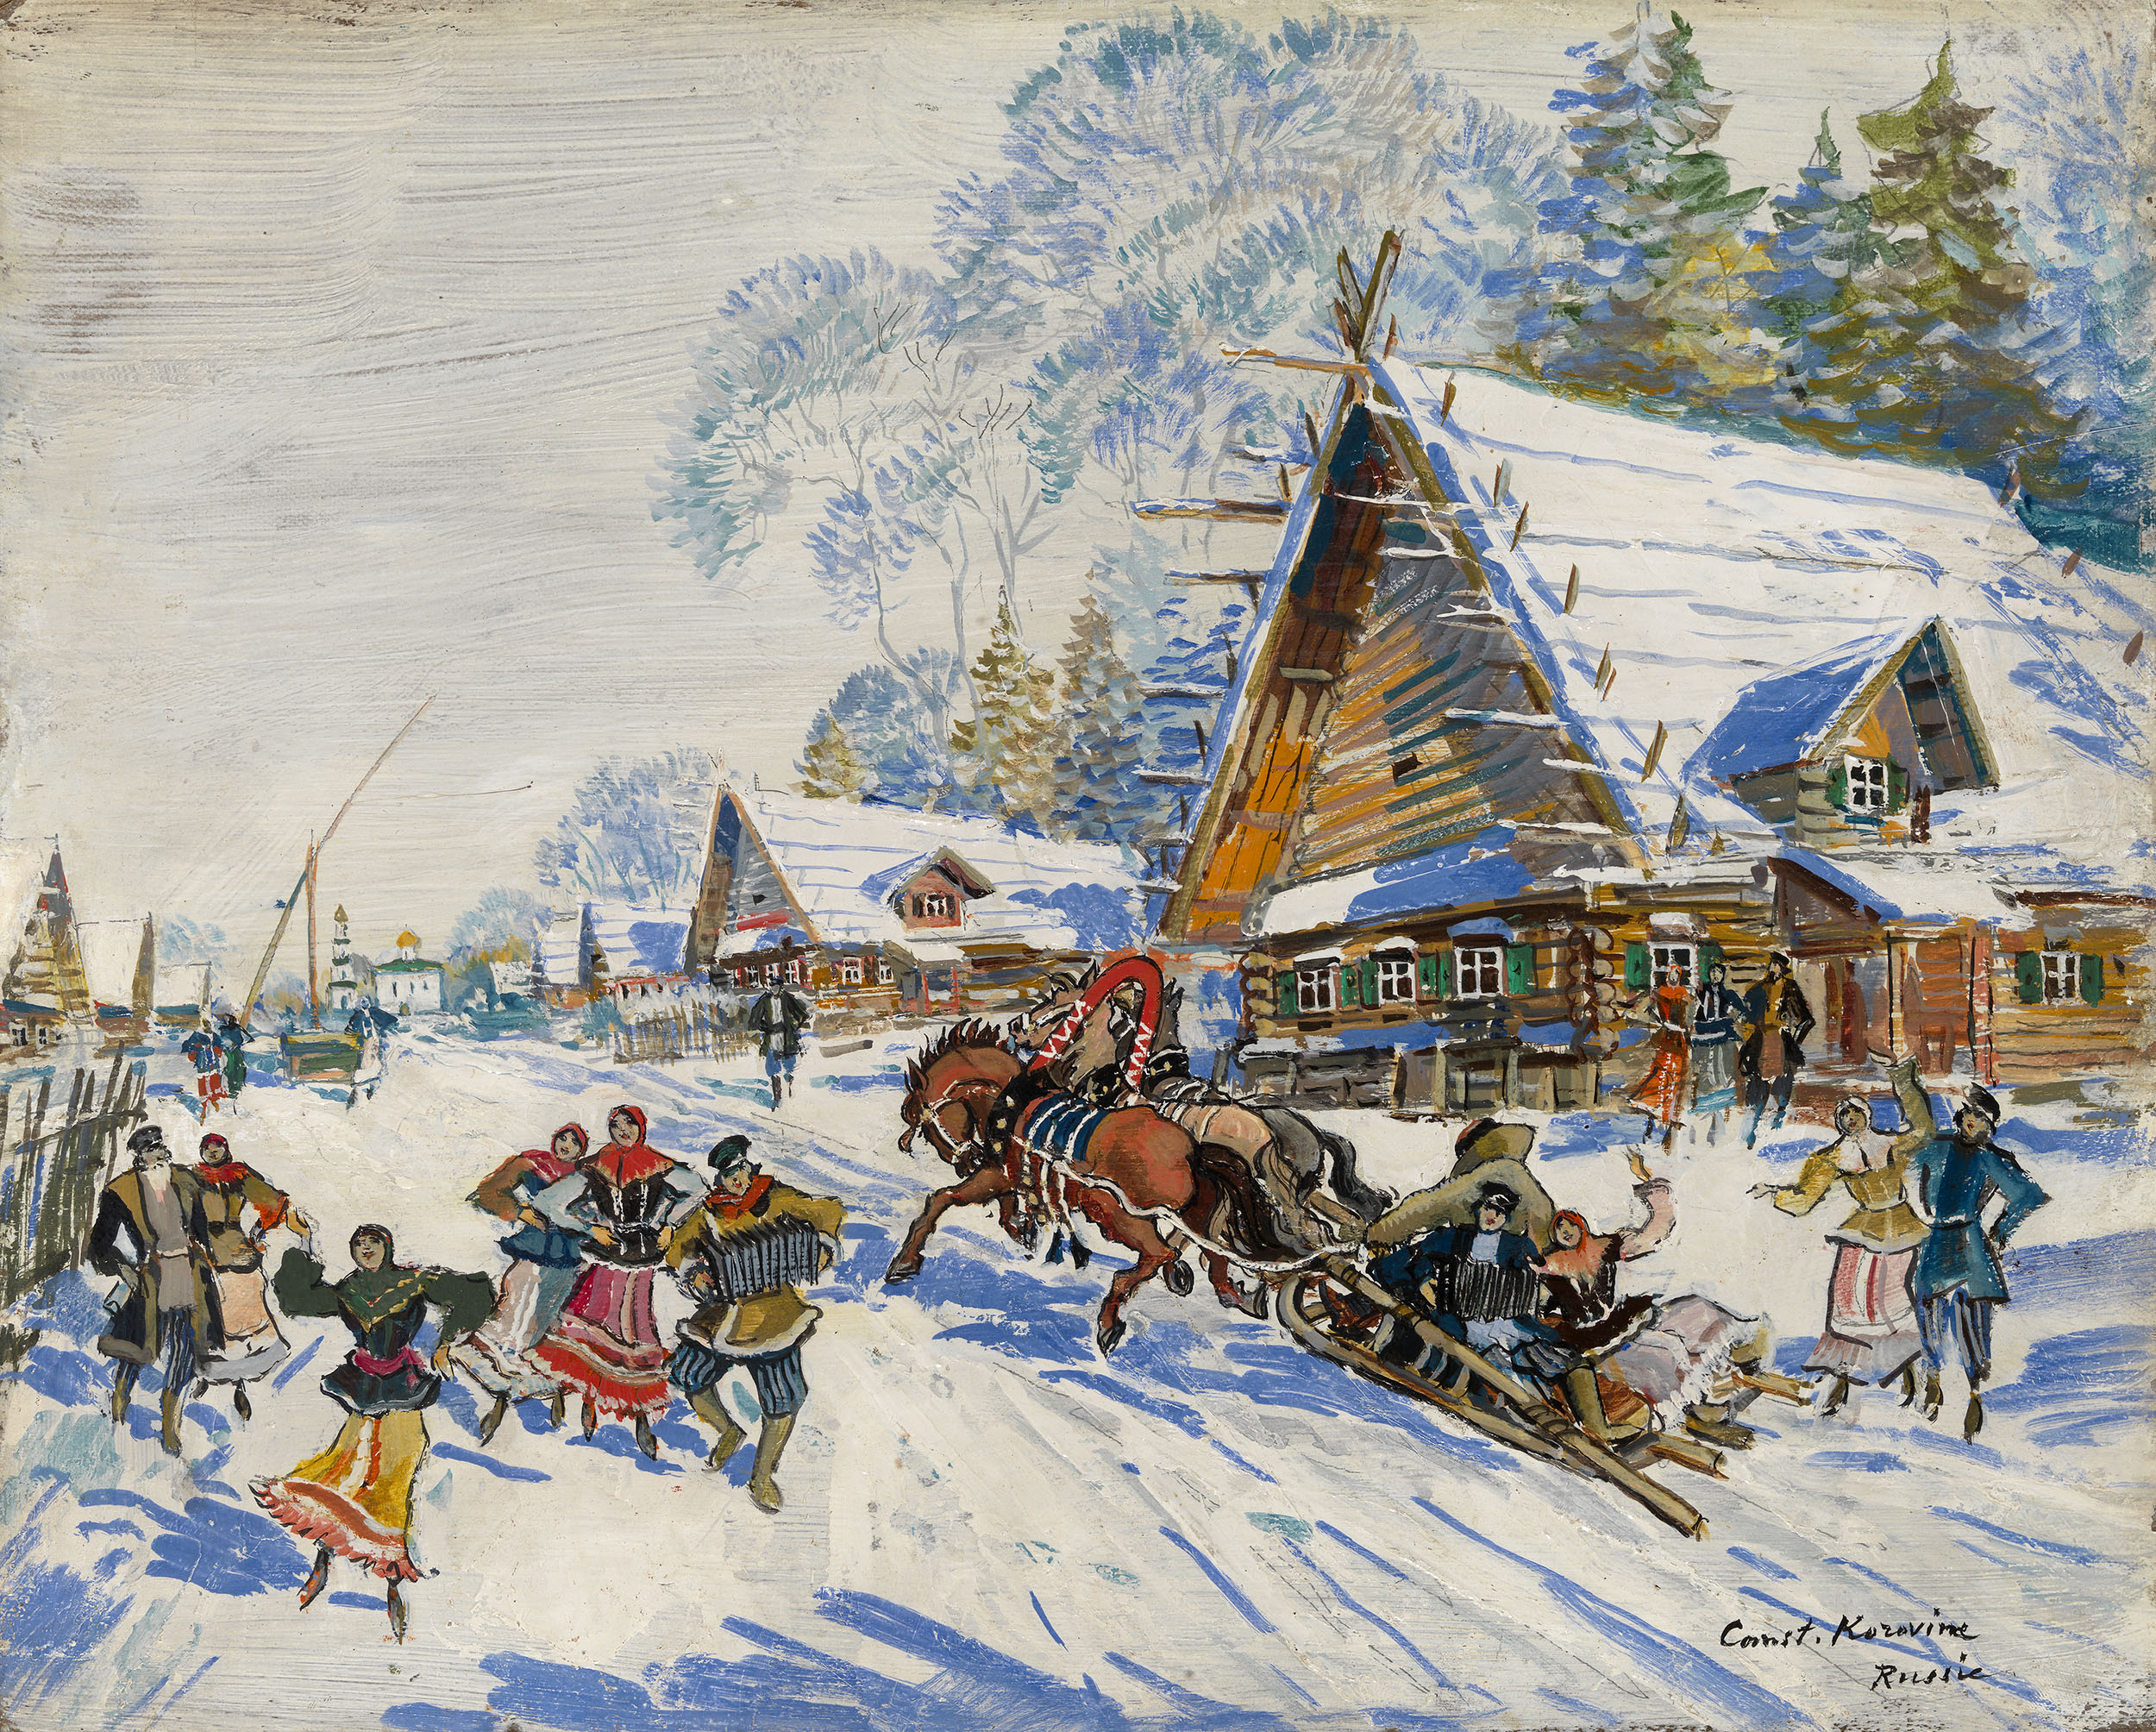 KOROVIN, KONSTANTIN Russian Village in Winter